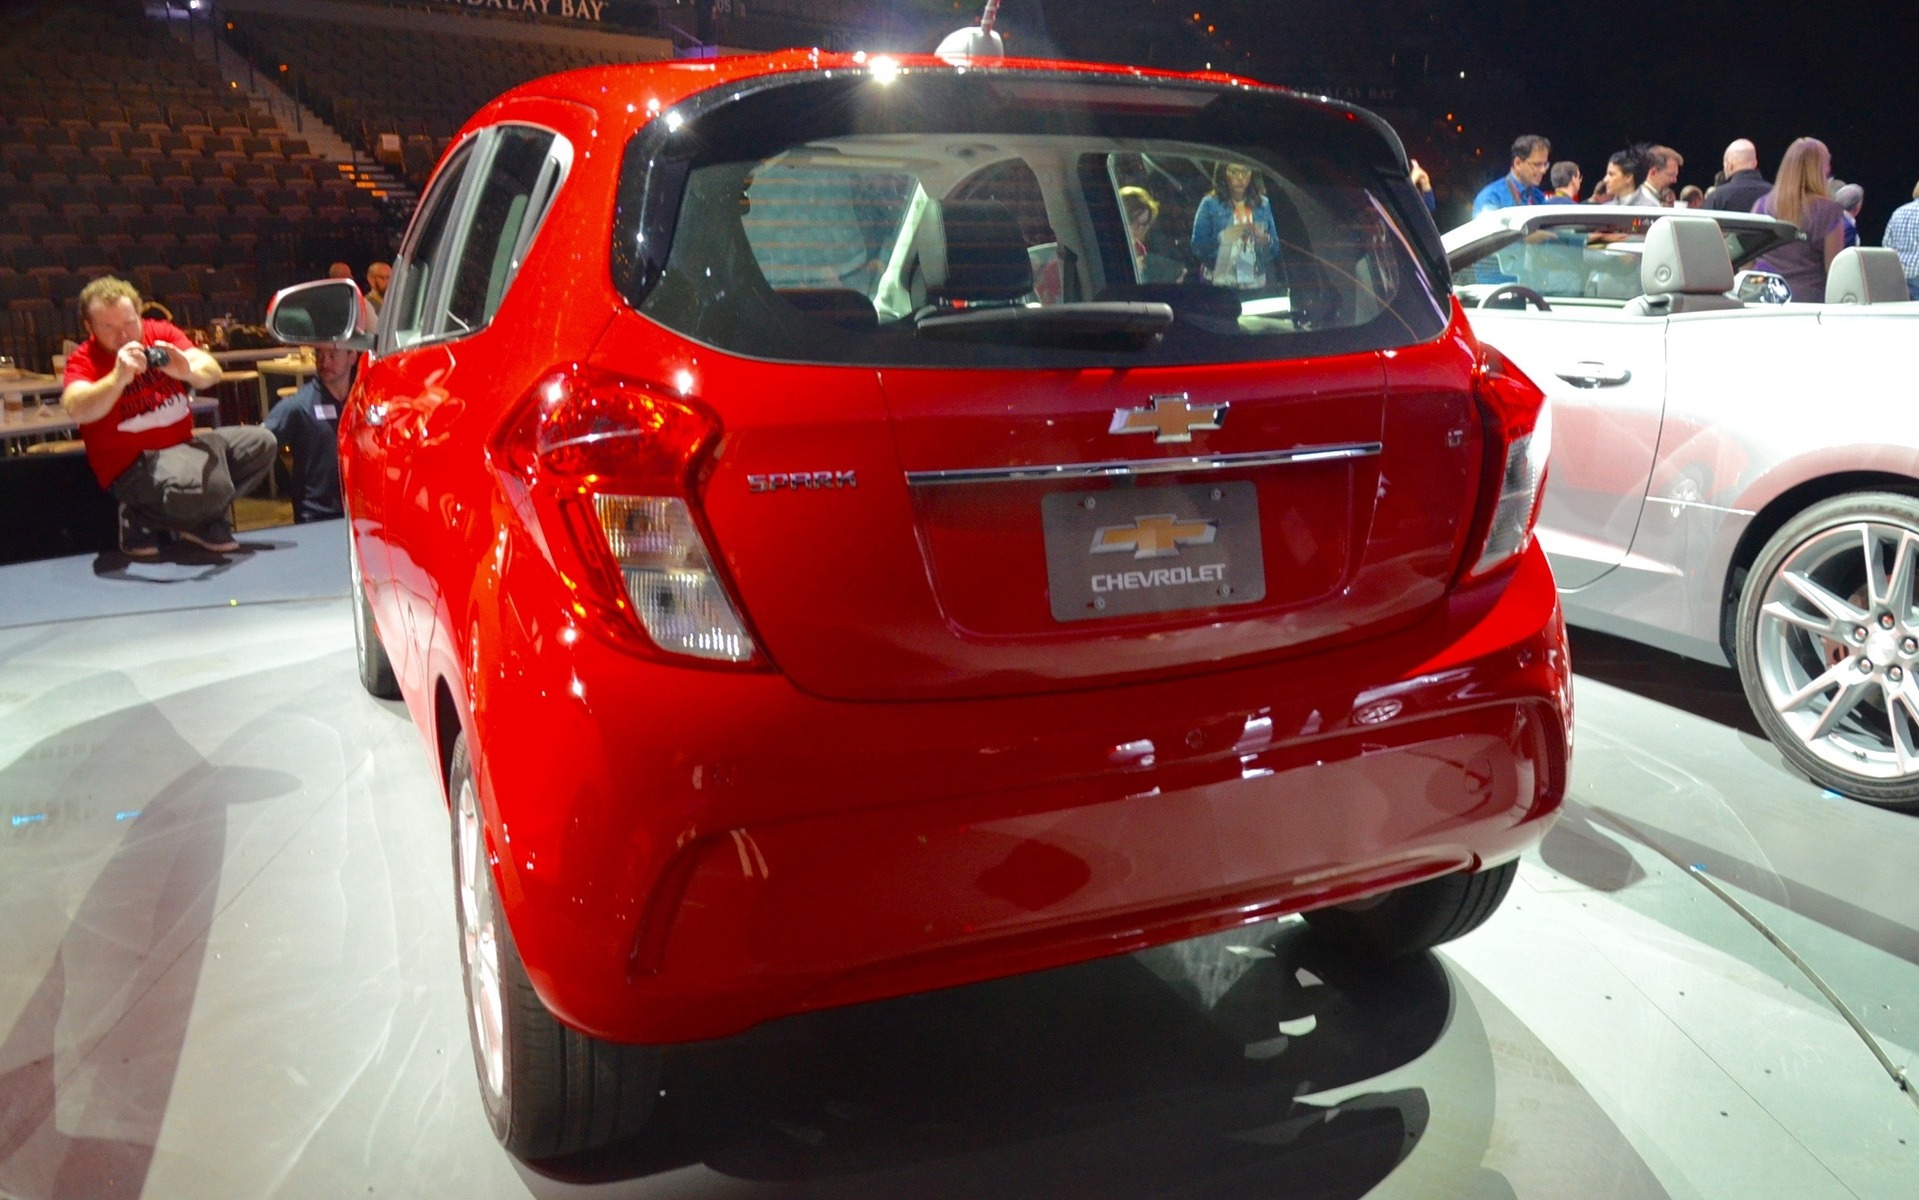 2019 Chevy Spark >> 2019 Chevrolet Spark: New Nose, New Colours - 2/3